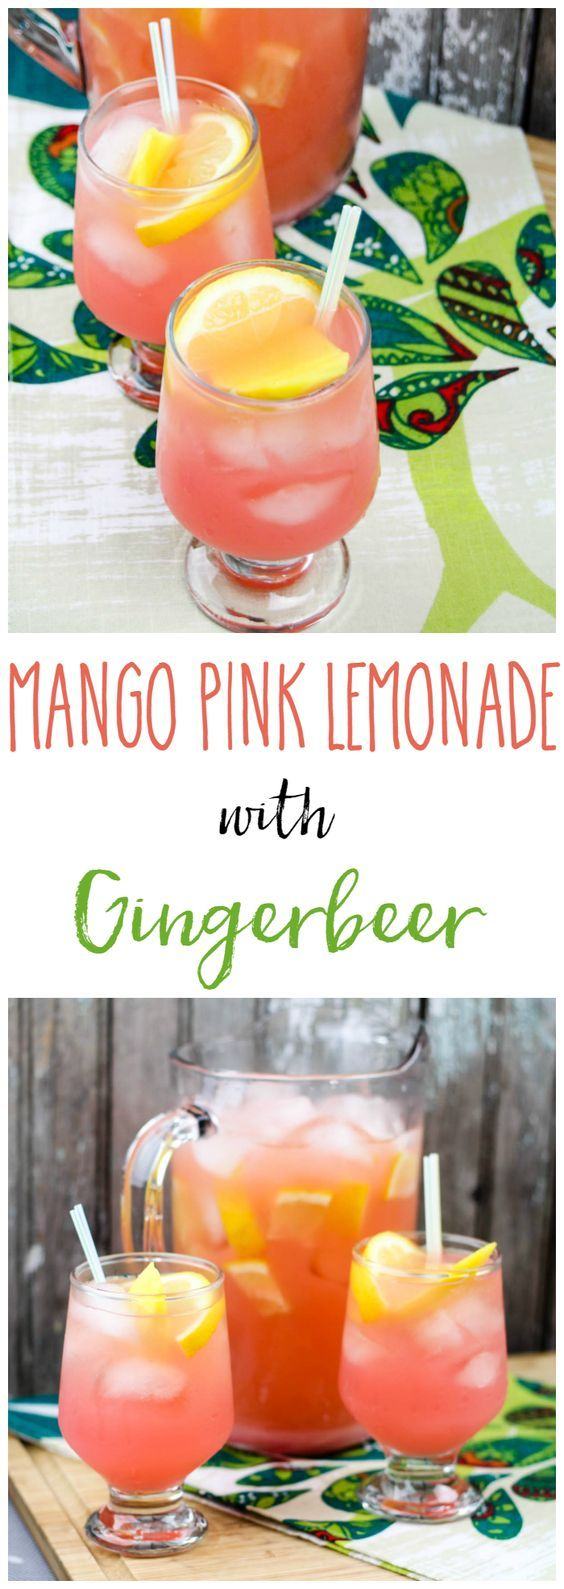 This is a pink lemonade you want at your next party! Perfect for Spring and Summer backyard events or a Mom's Night Out gathering.